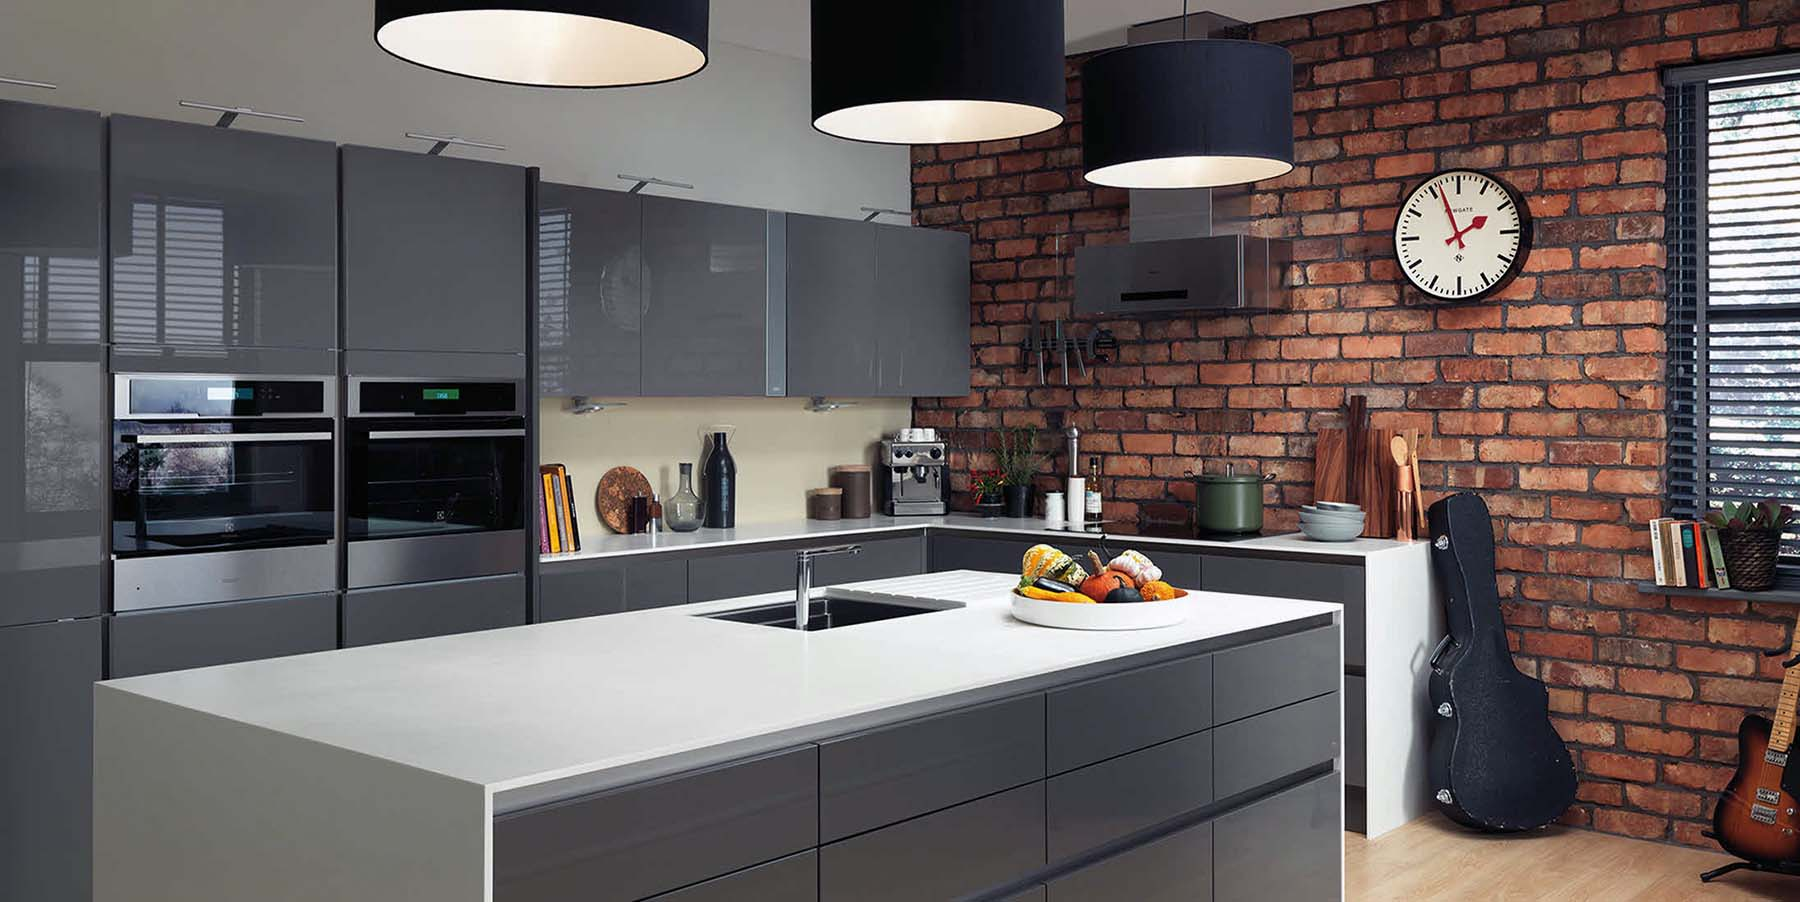 Modern kitchen featuring gray flat faced cabinetry with no hardware, white countertops and a red brick wall.